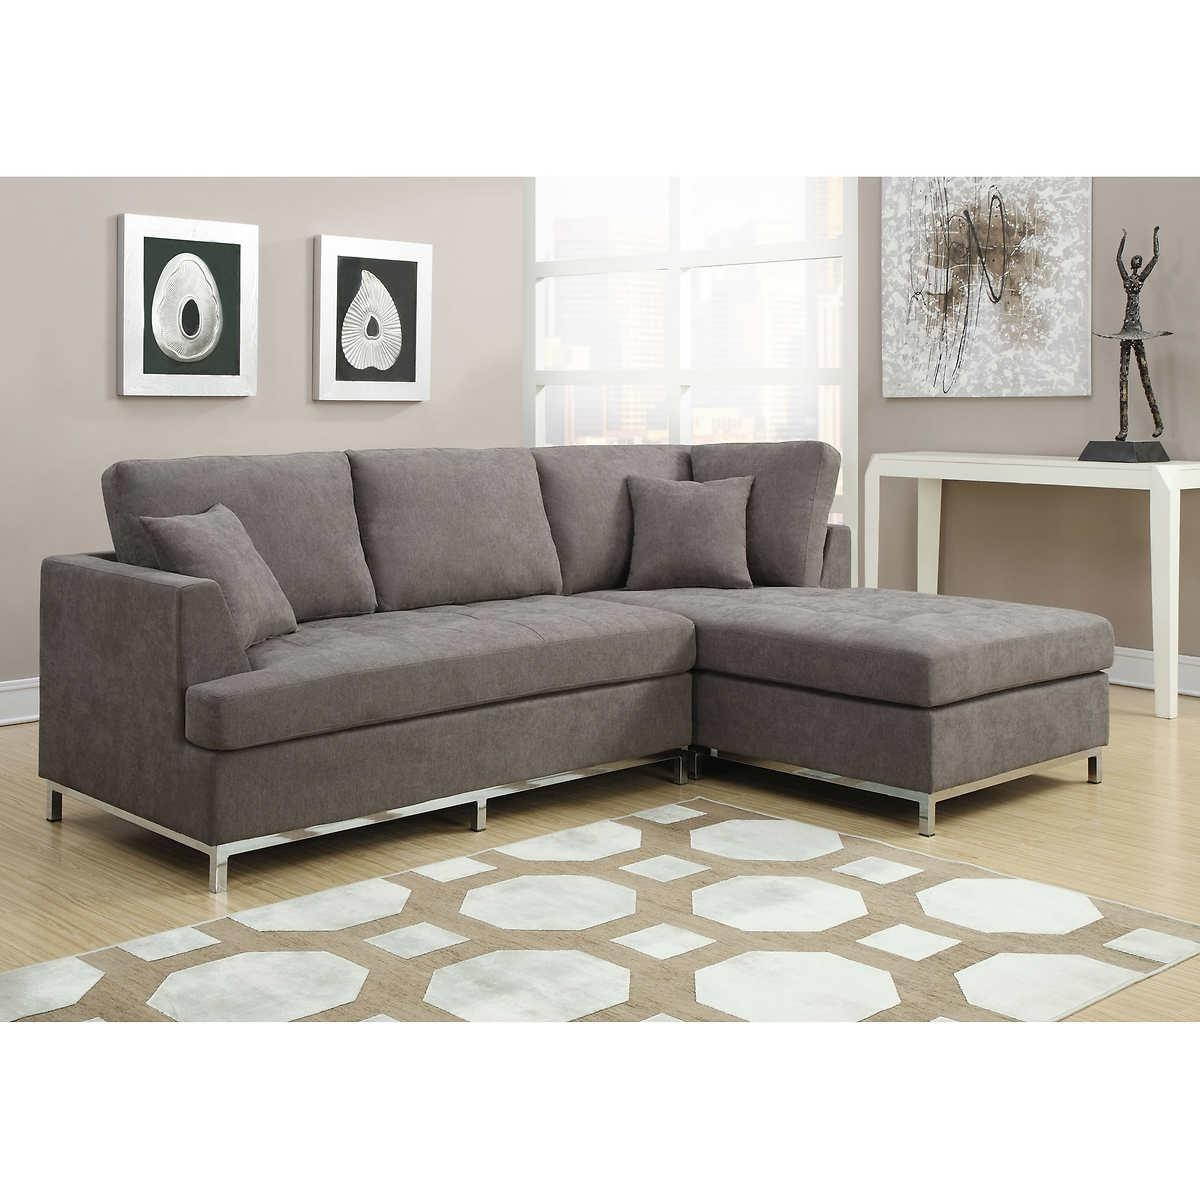 Sectional Sofa With Chaise Costco | Tehranmix Decoration Pertaining To Berkline Sectional Sofas (Image 15 of 20)